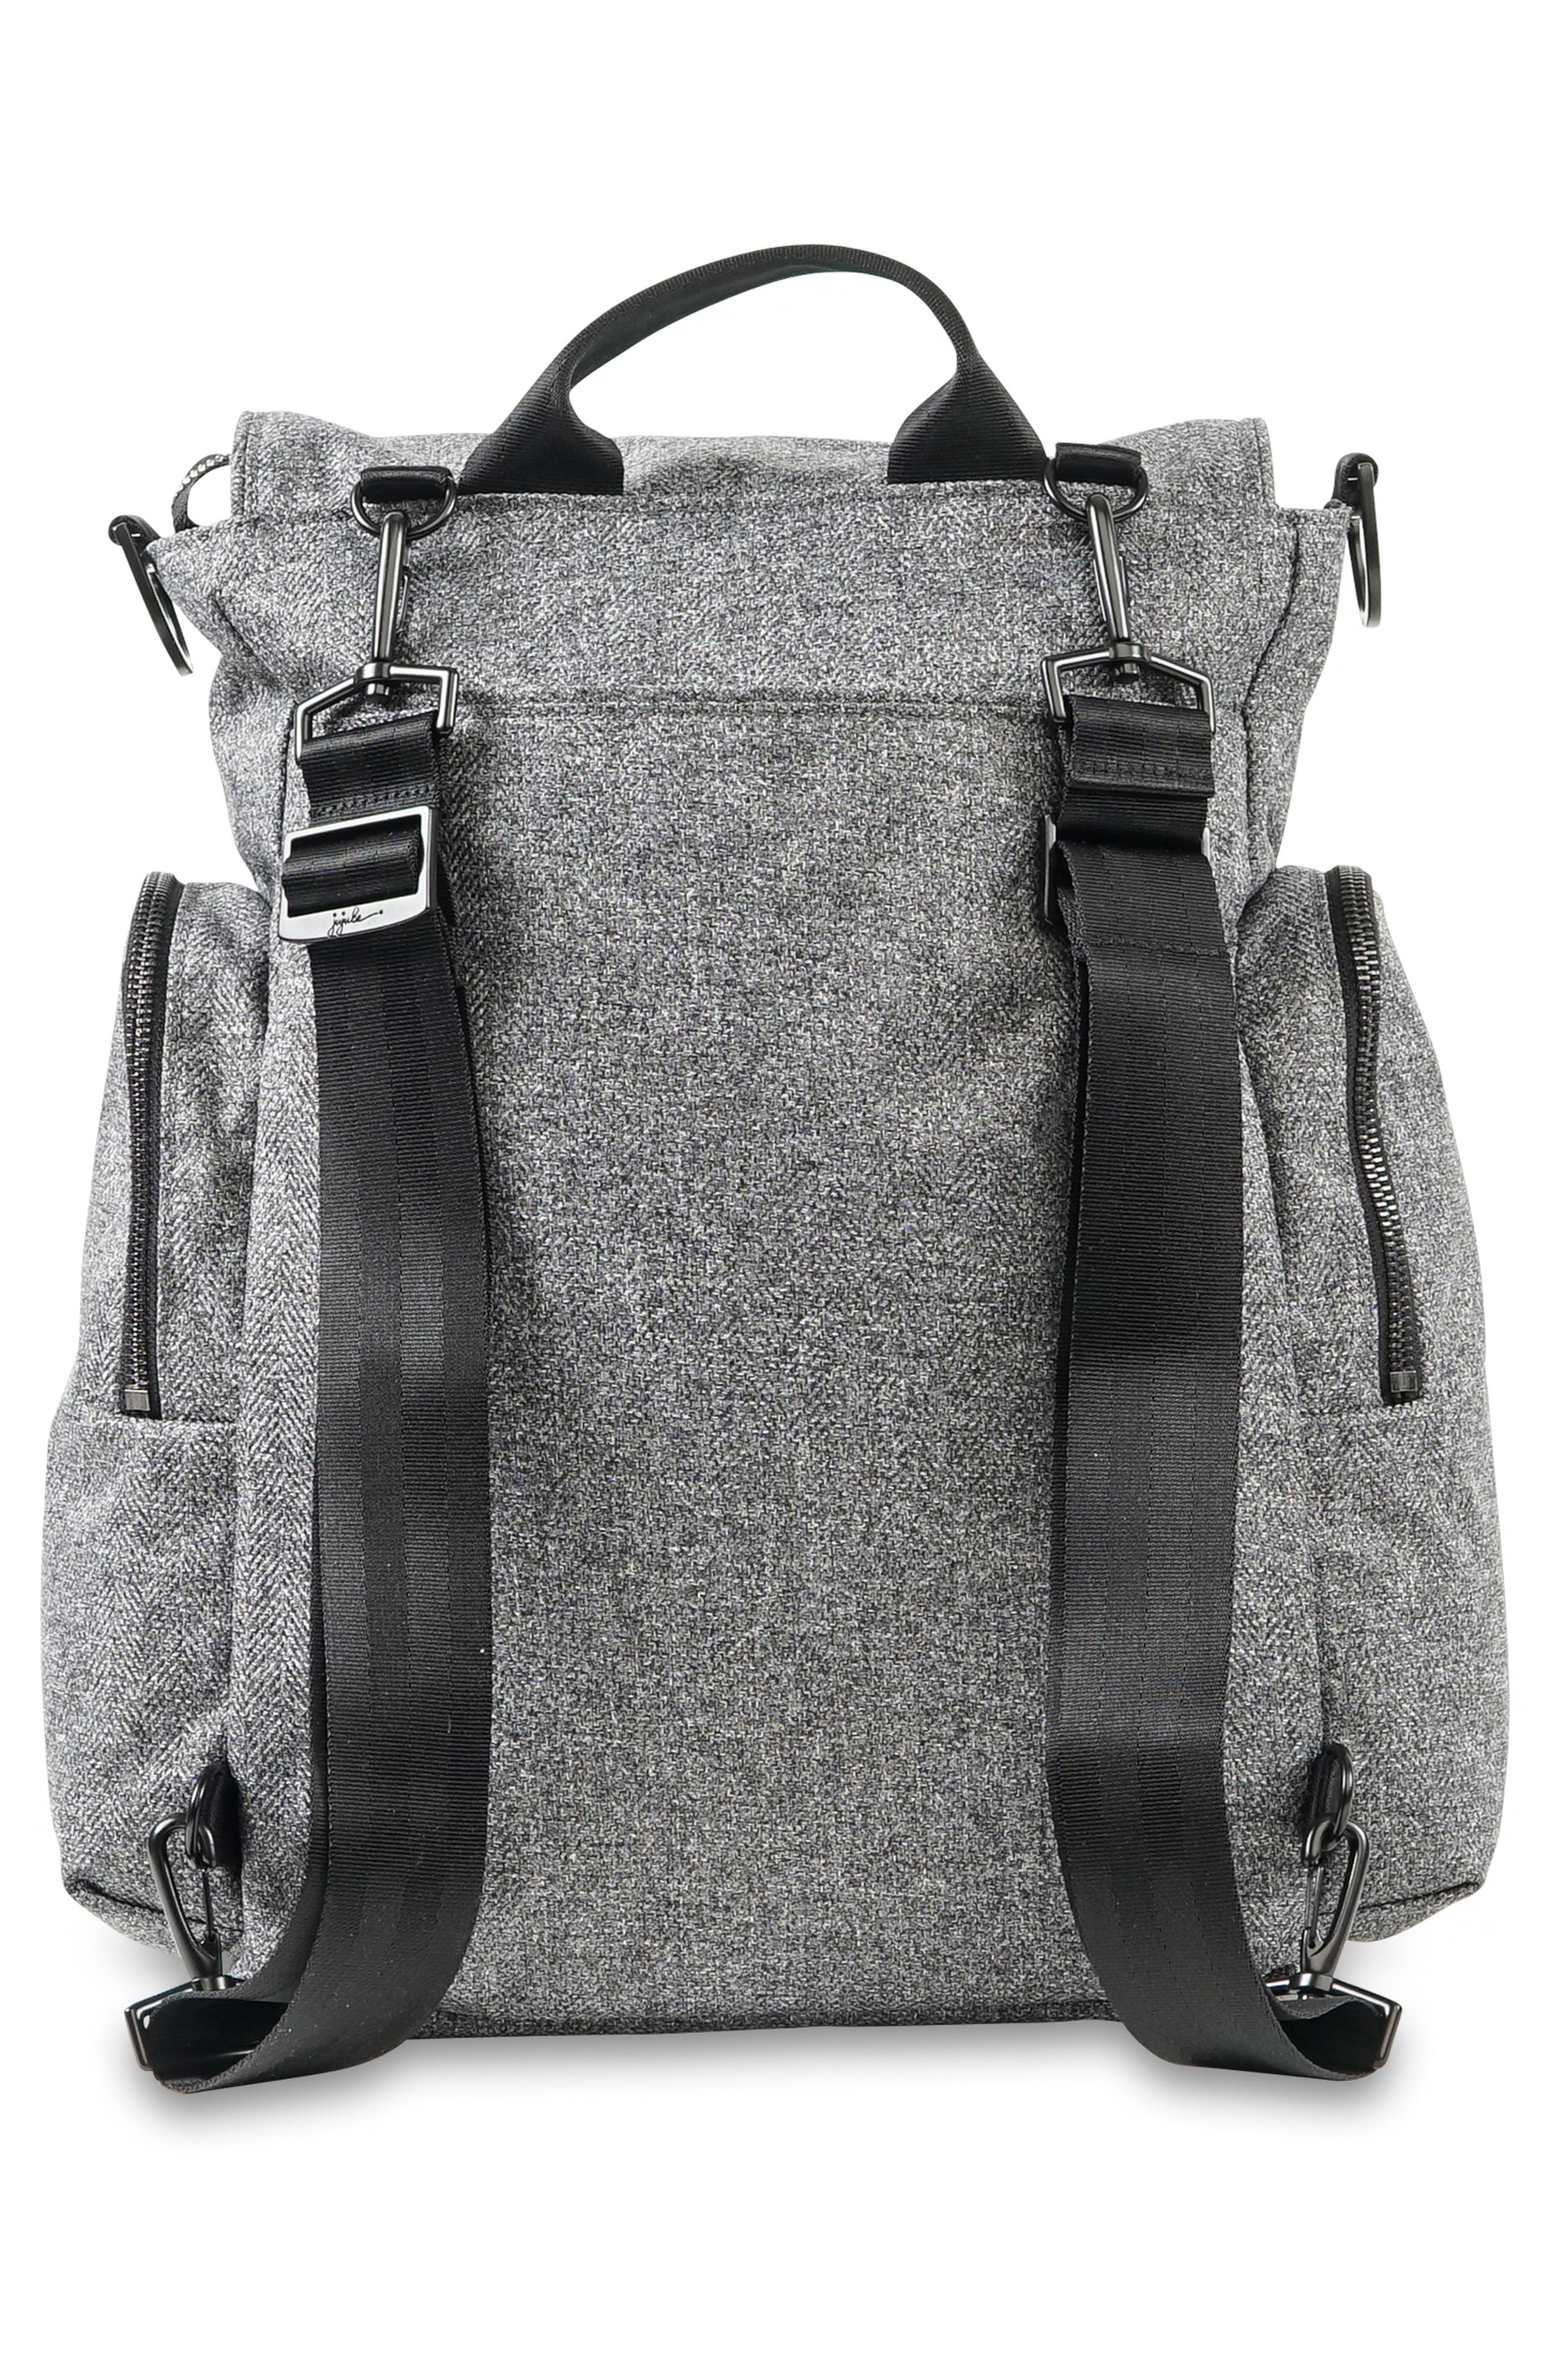 Onyx Be Sporty Diaper Backpack,                             Alternate thumbnail 2, color,                             035